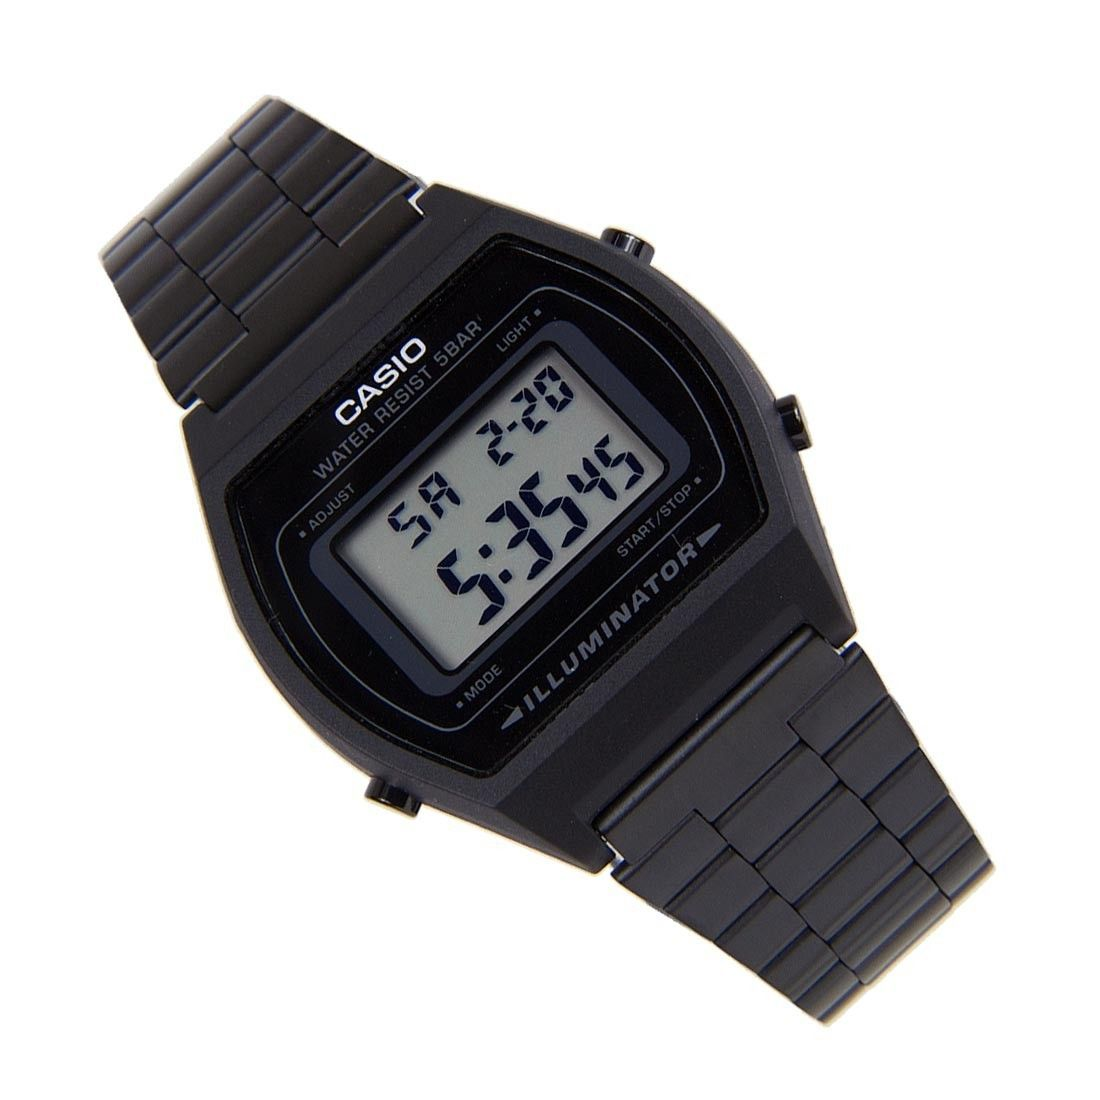 e20d8e0fdc1 Sports Watch Store - Casio B640WB-1A B640WB-1 Digital Quartz Illuminator Classic  Vintage